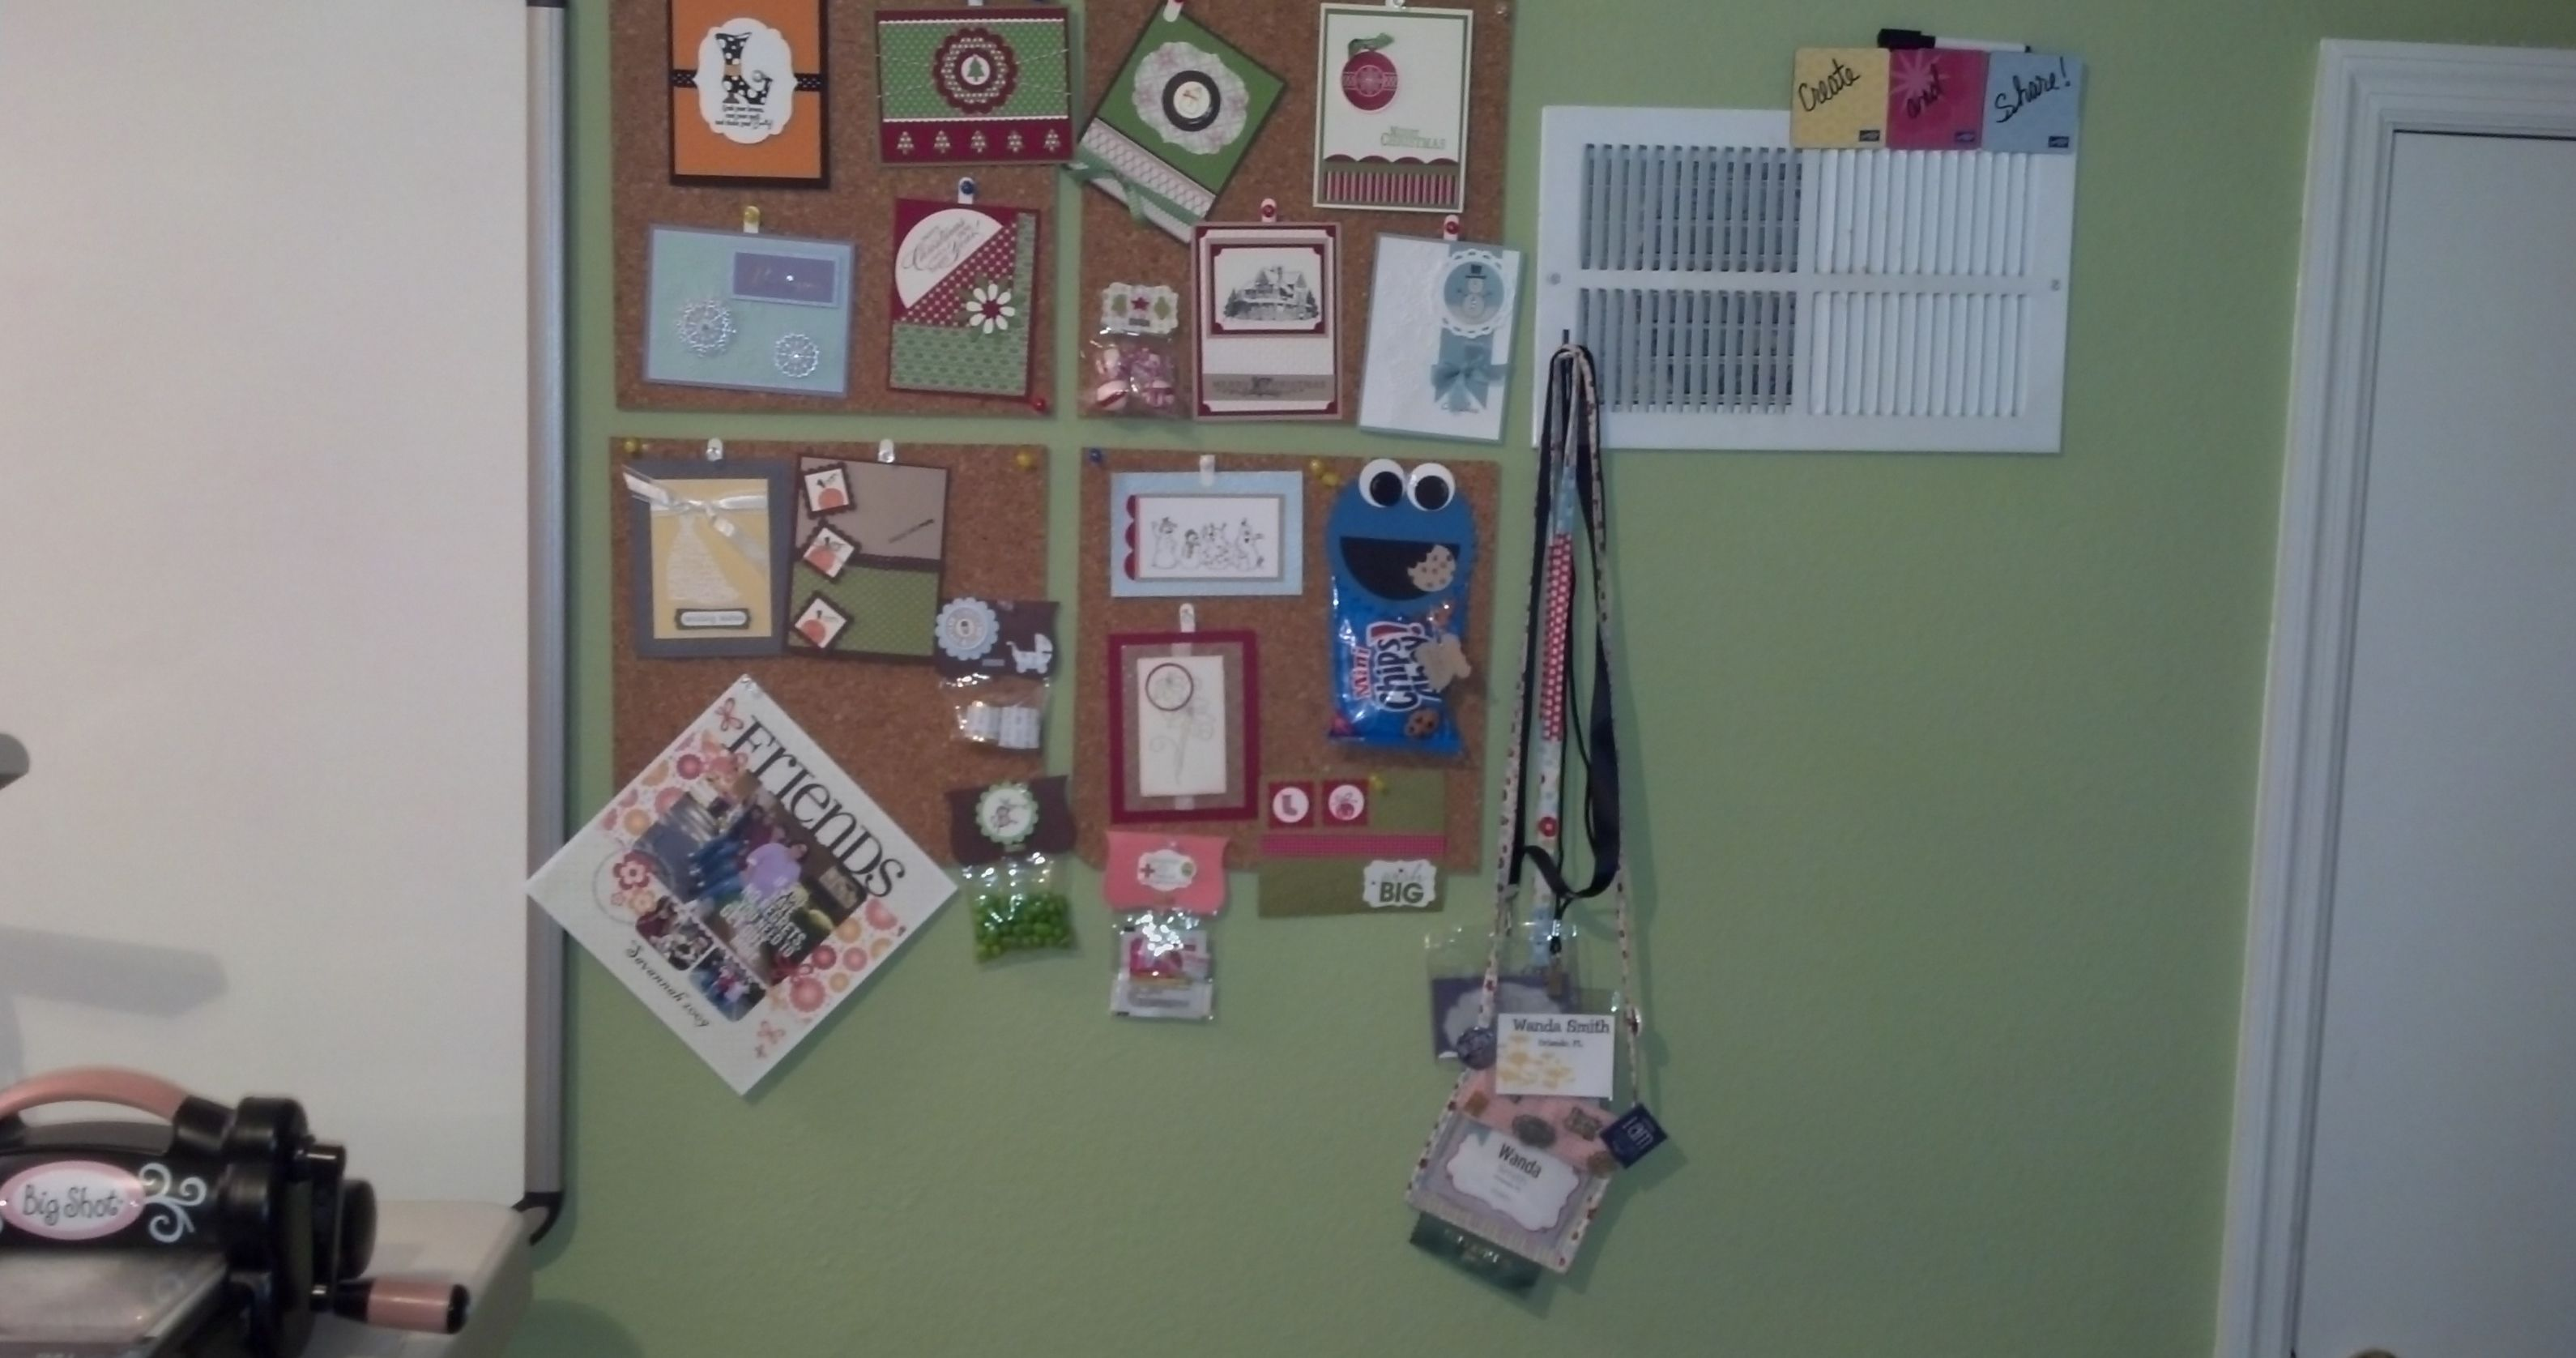 One of my sample boards